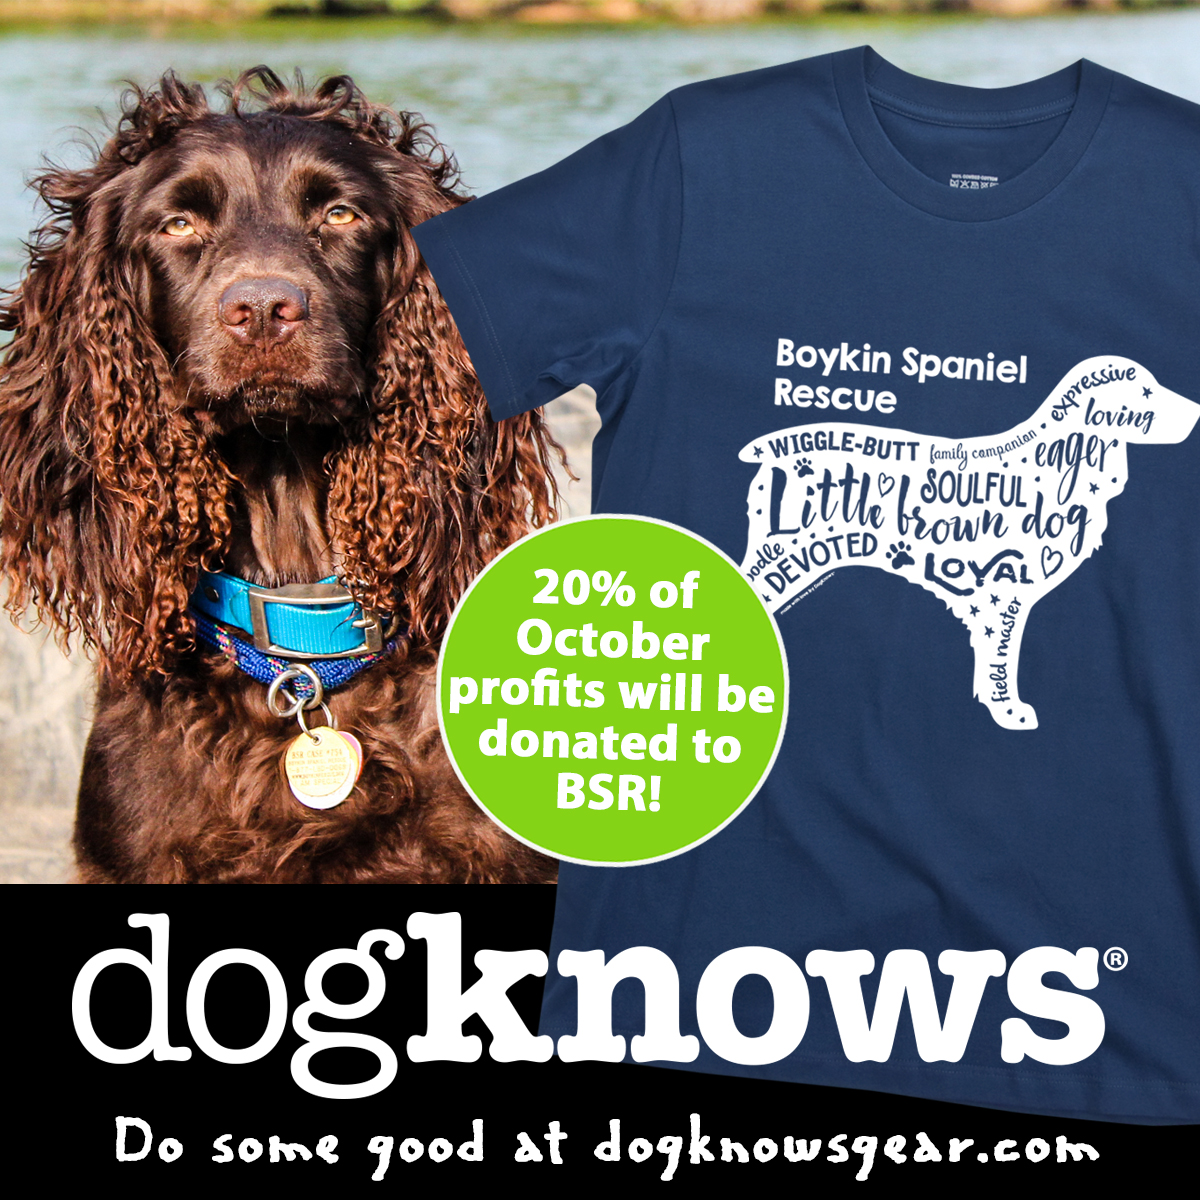 DogKnows Do Good: Rescue of the Month